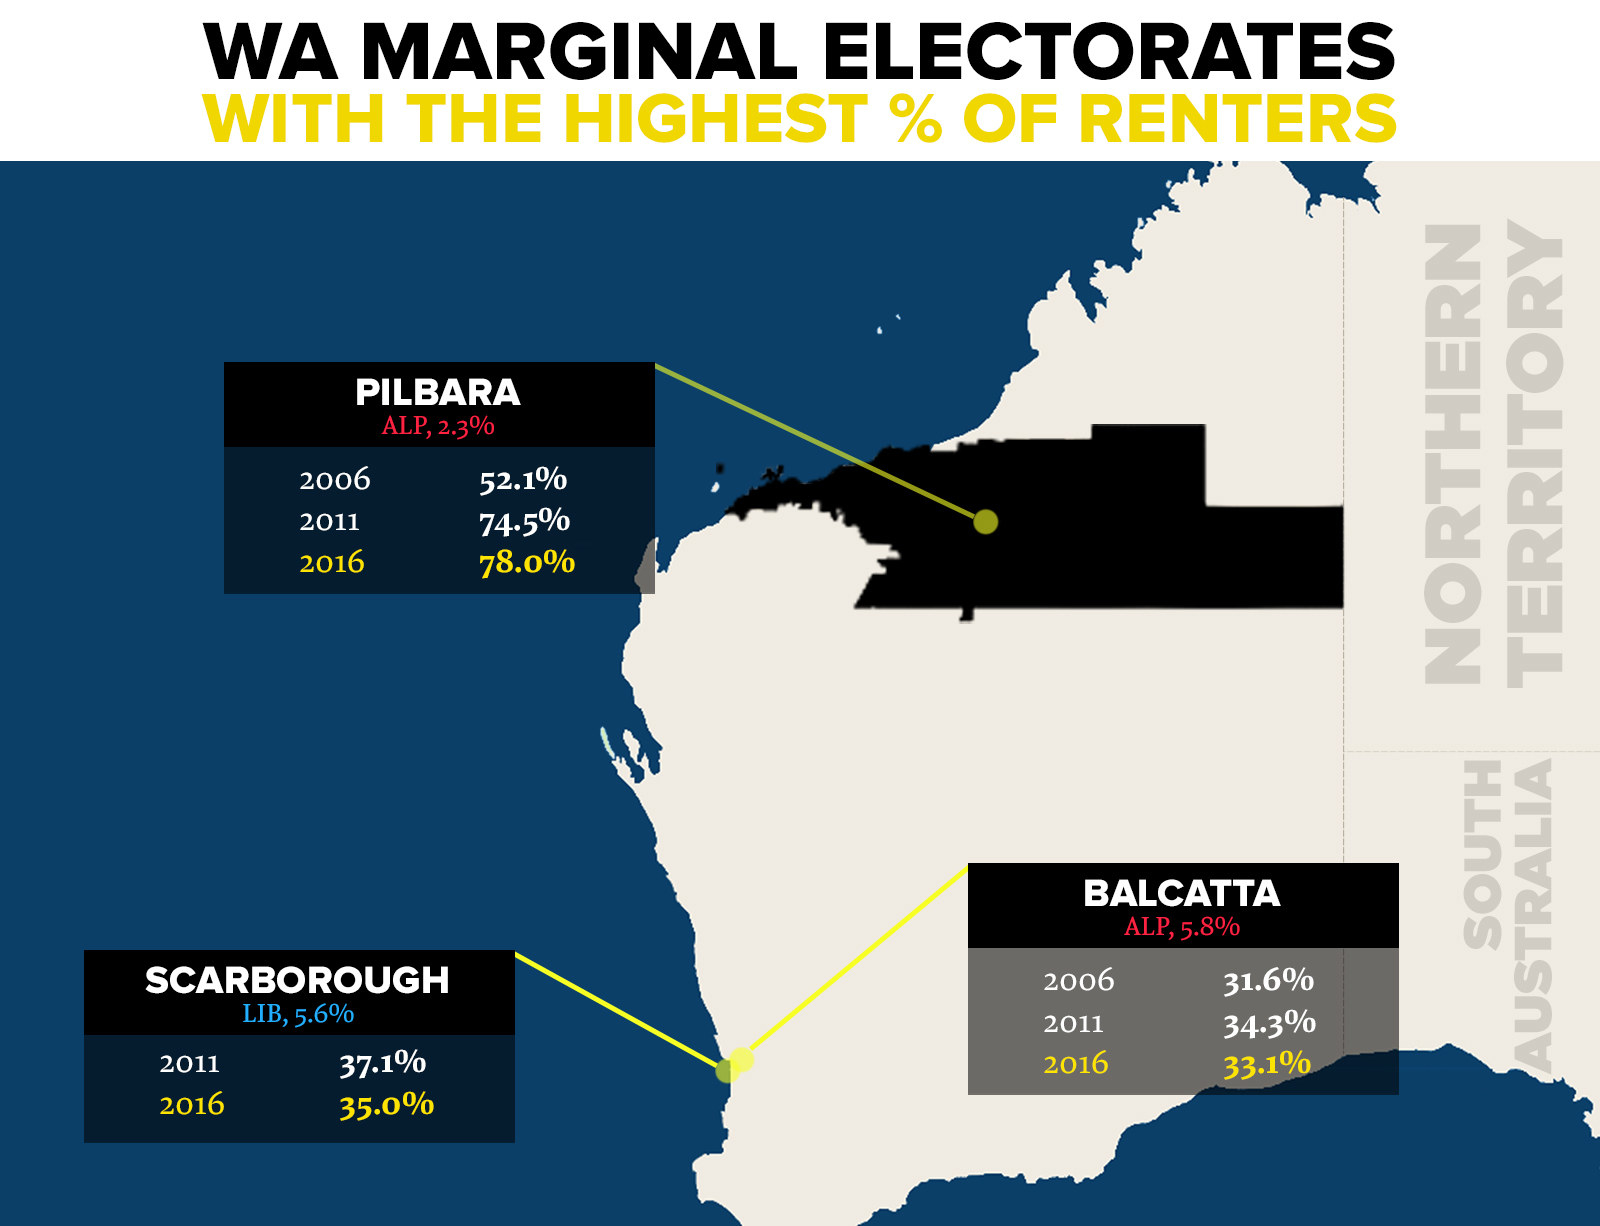 WA doesn't fit the pattern – unlike every other jurisdiction, its share of properties that are rentals fell between 2011 and 2016 (from 29.2% to 28.3%). Renters make up a majority only in the electorate of Pilbara (78.0%), but are also above the national average in Scarborough (35.0%), Balcatta (34.3%), Mount Lawley (32.4%), and Geraldton (31.5%). Renting numbers rose only in three marginal electorates between 2011 and 2016 (Kingsley, Pilbara and Riverton).